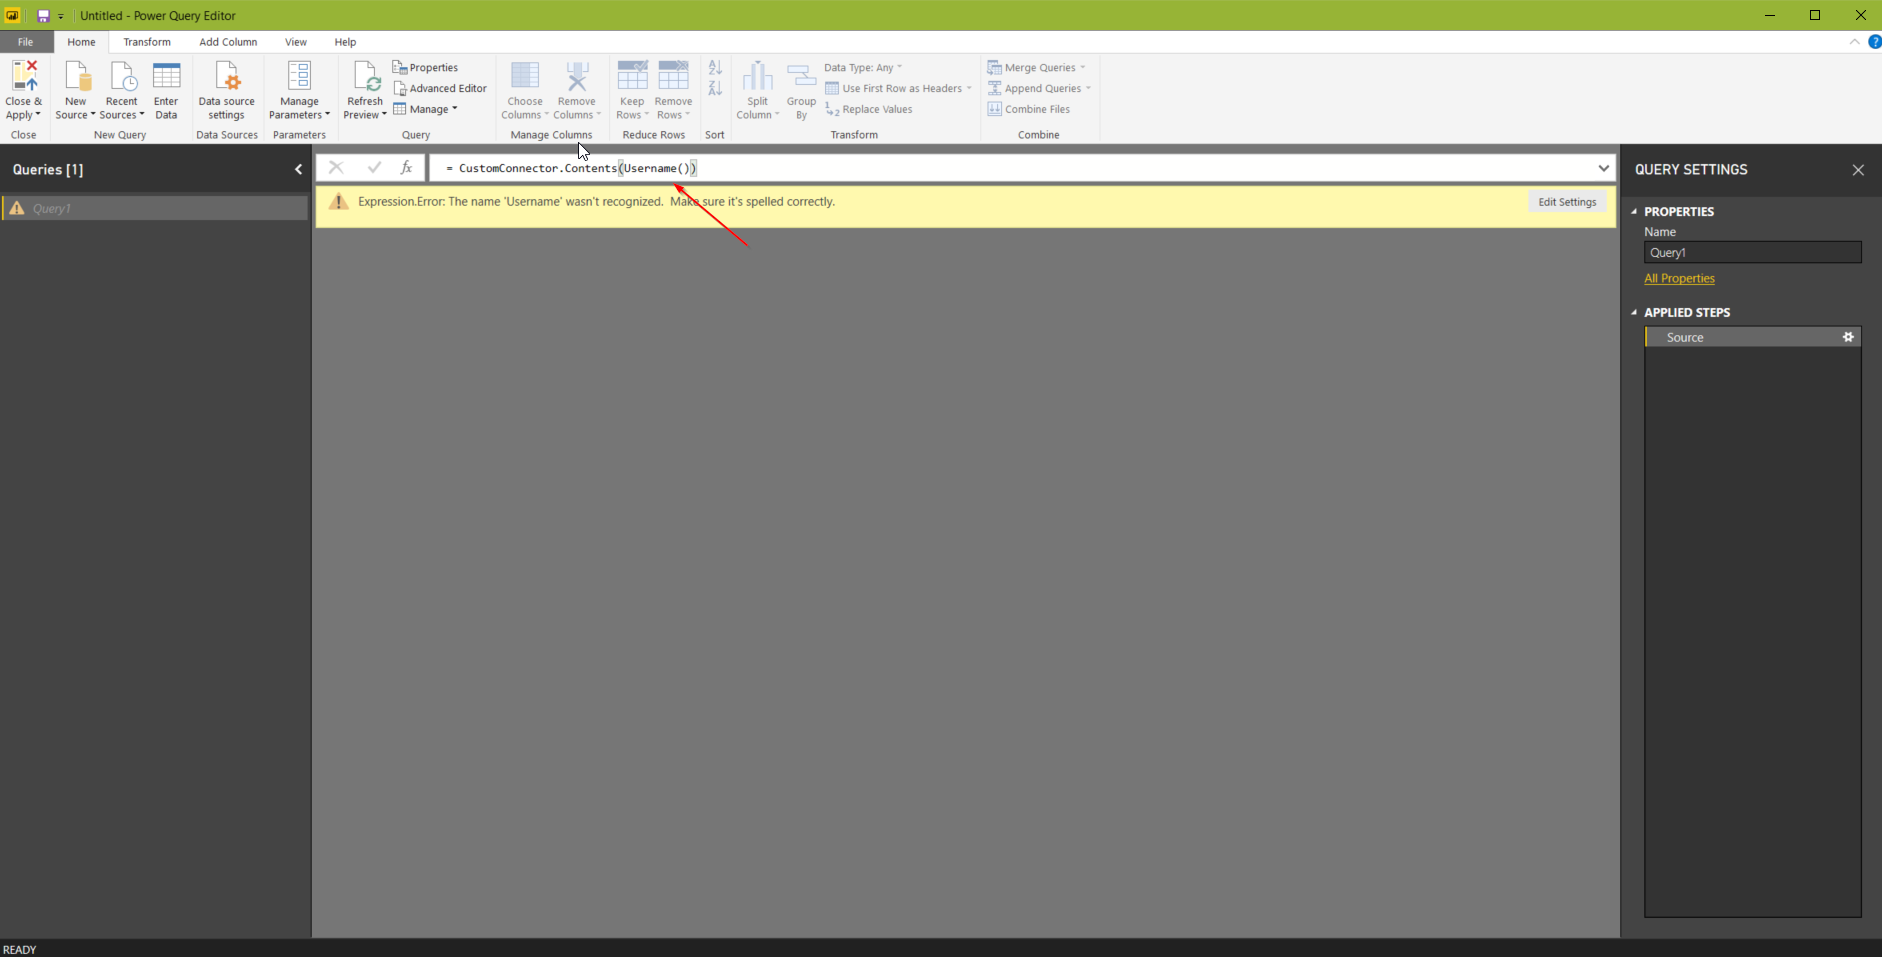 Passing Username from Embed Token (Power BI Embedded) to